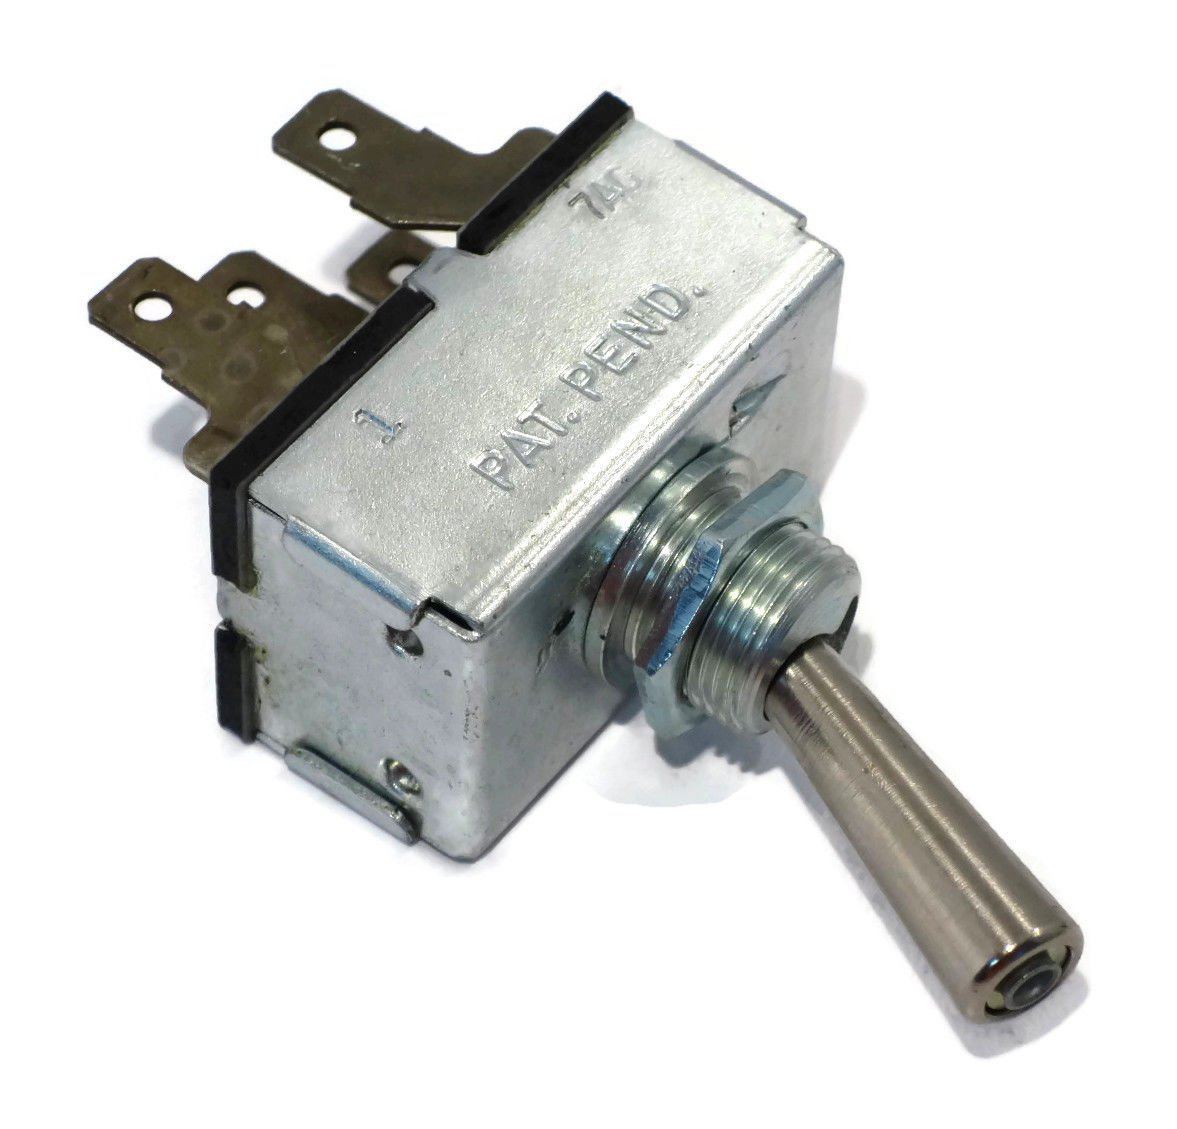 The ROP Shop PTO Switch fits John Deere 160 240 245 260 261 265 285 316 318 320 322 330 332